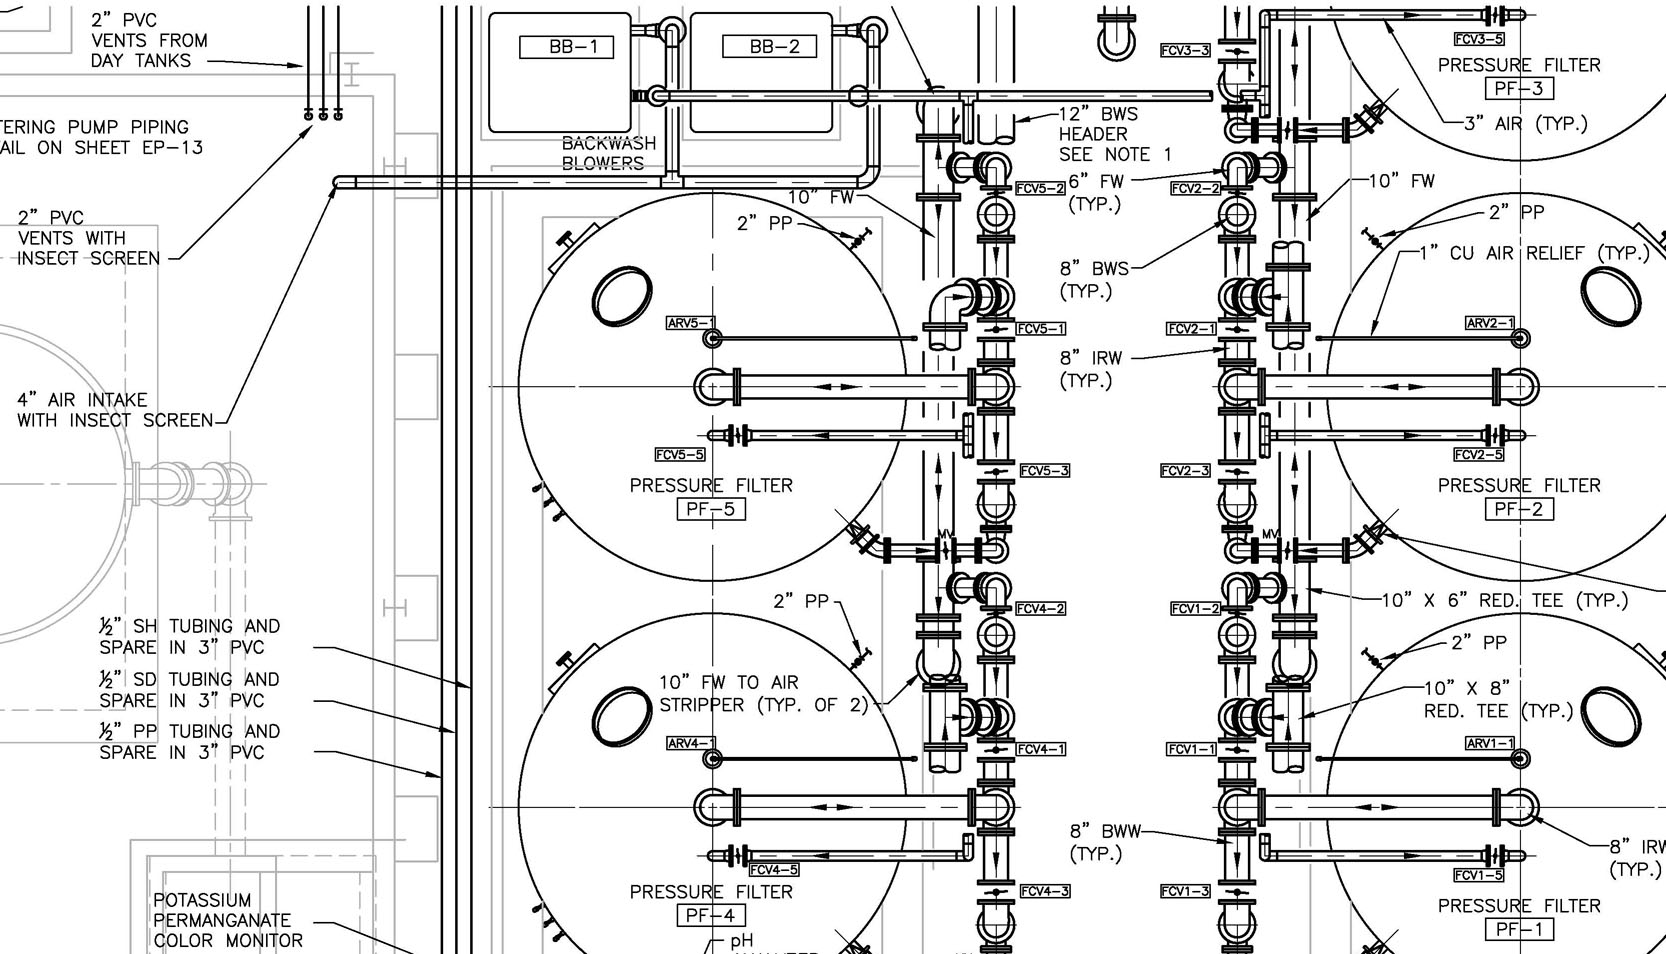 hight resolution of piping layout plan